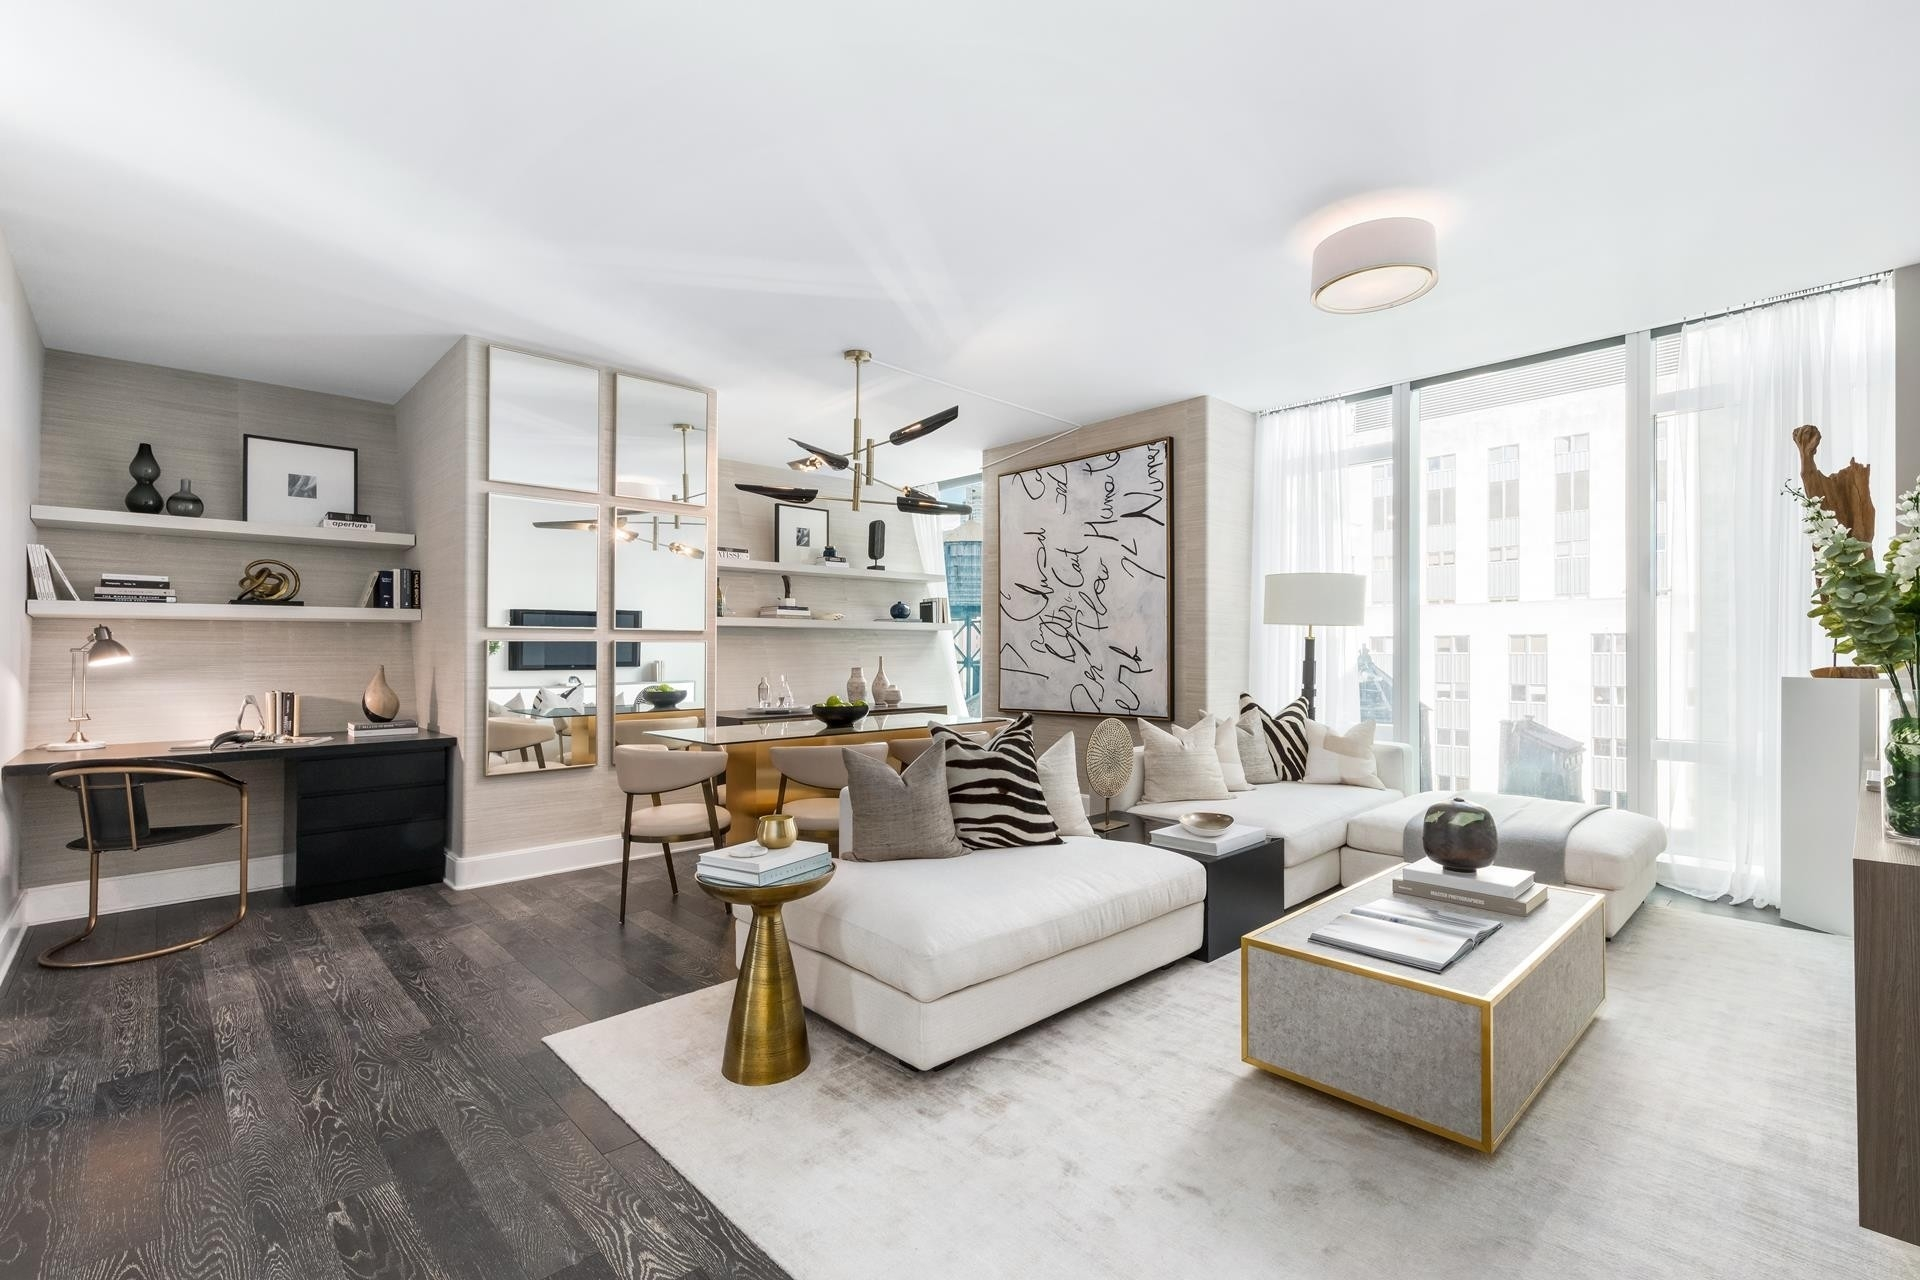 Condominium at Madison Square Park Tower, 45 East 22nd St, 16A New York